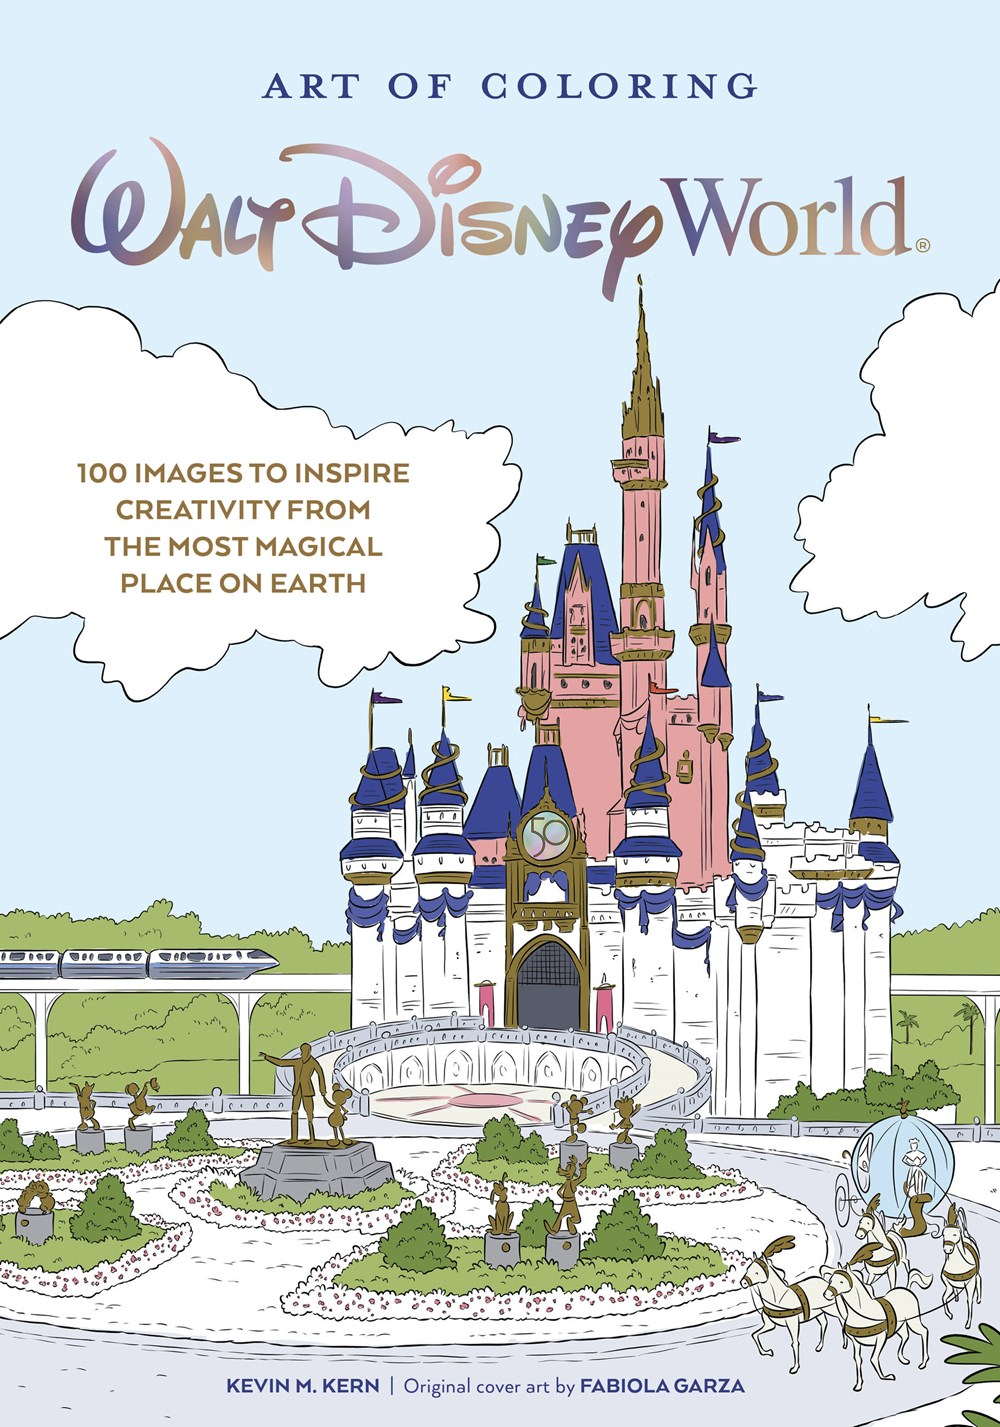 Art of Coloring: Walt Disney World: 100 Images to Inspire Creativity from The Most Magical Place on Earth